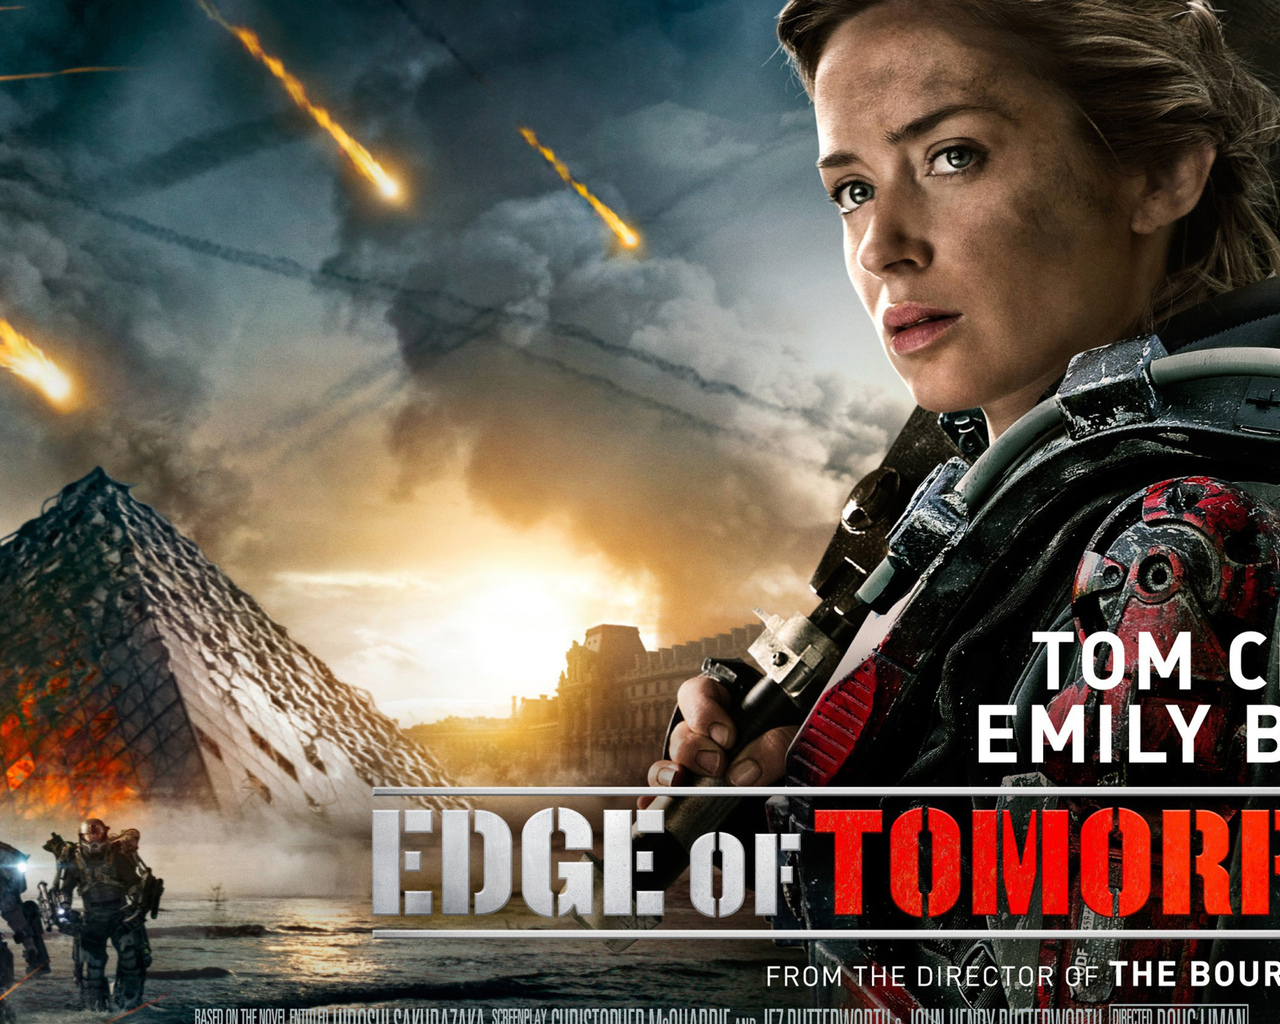 1280x1024 Emily Blunt In Edge Of Tomorrow 1280x1024 Resolution Hd